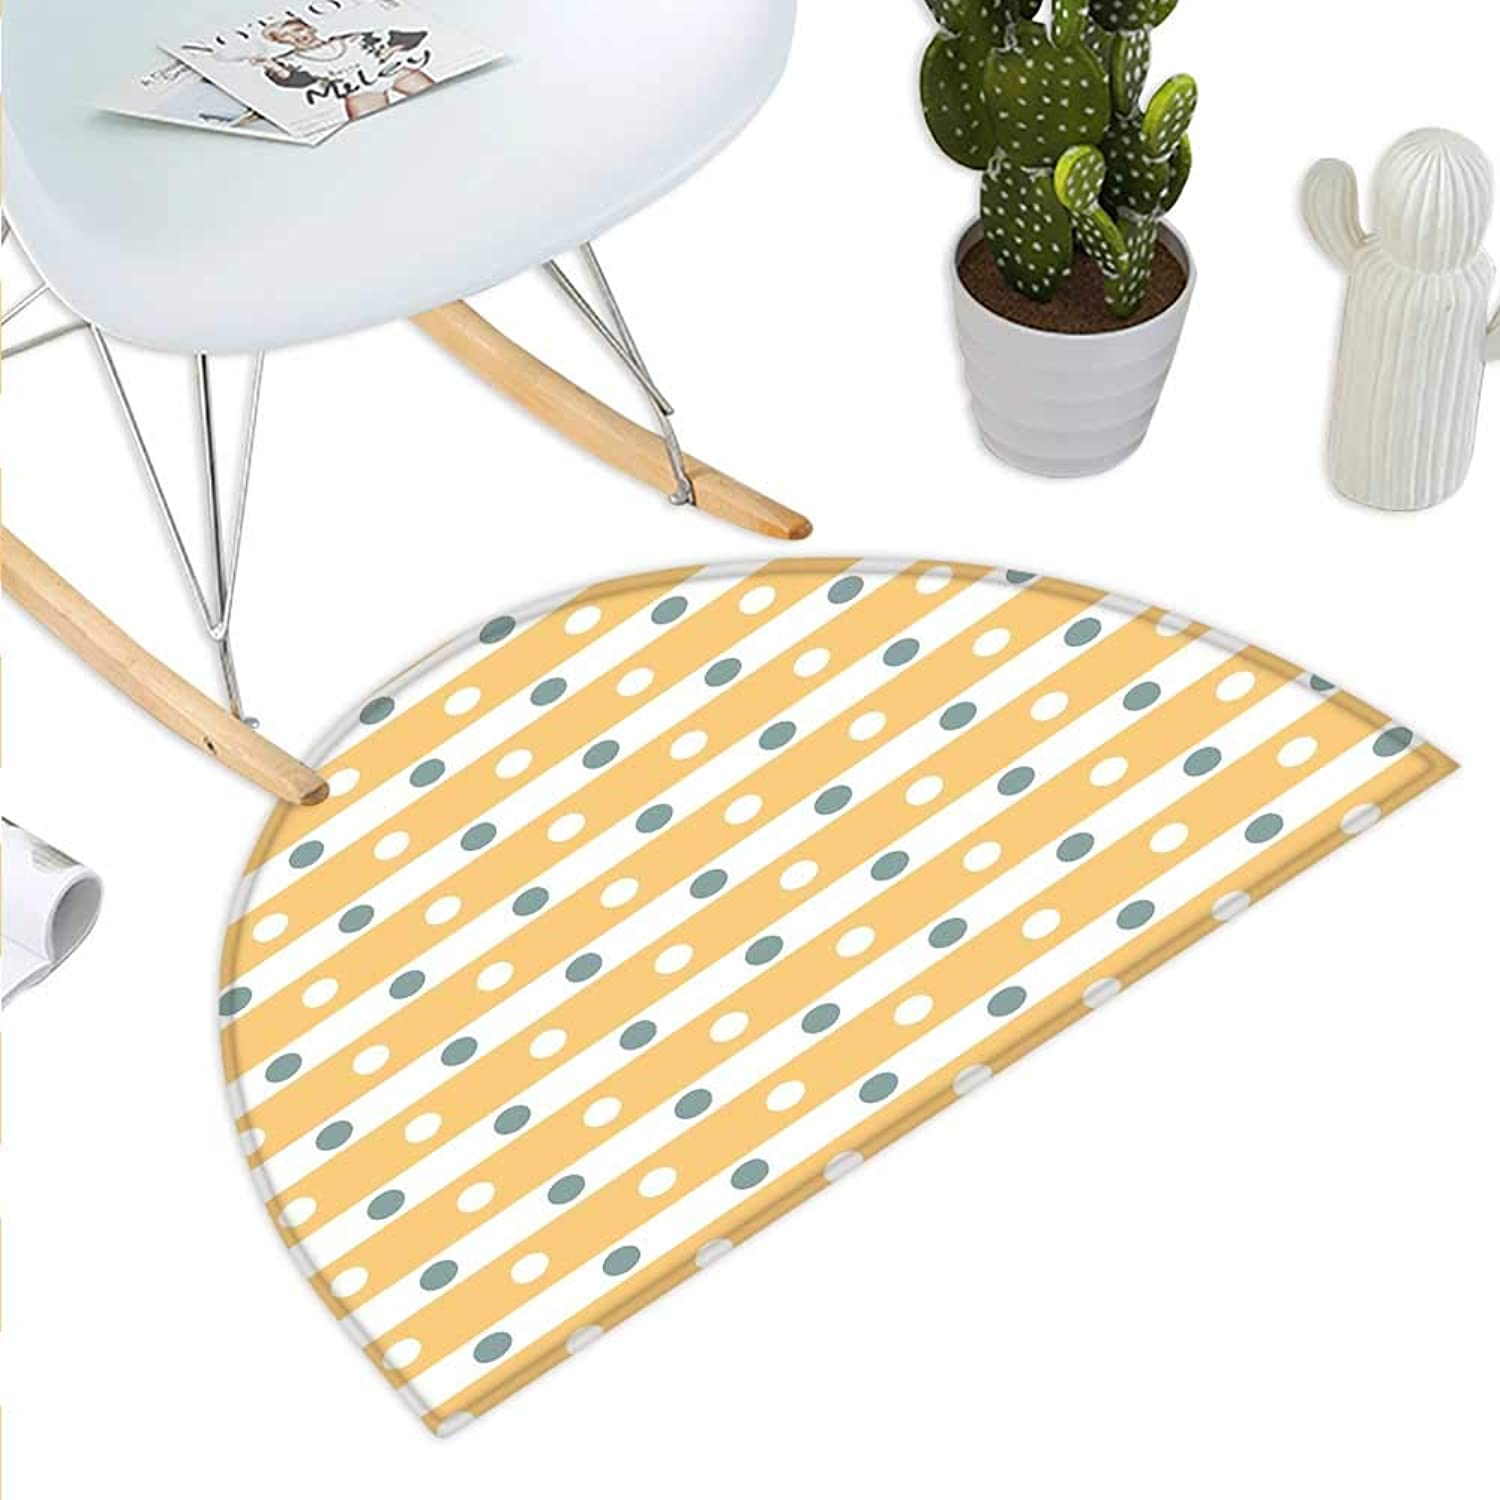 Yellow and White Semicircle Doormat Horizontal Bold Stripes with Polka Dots Old Fashioned Tile Halfmoon doormats H 43.3  xD 64.9  Almond Green Apricot Cream